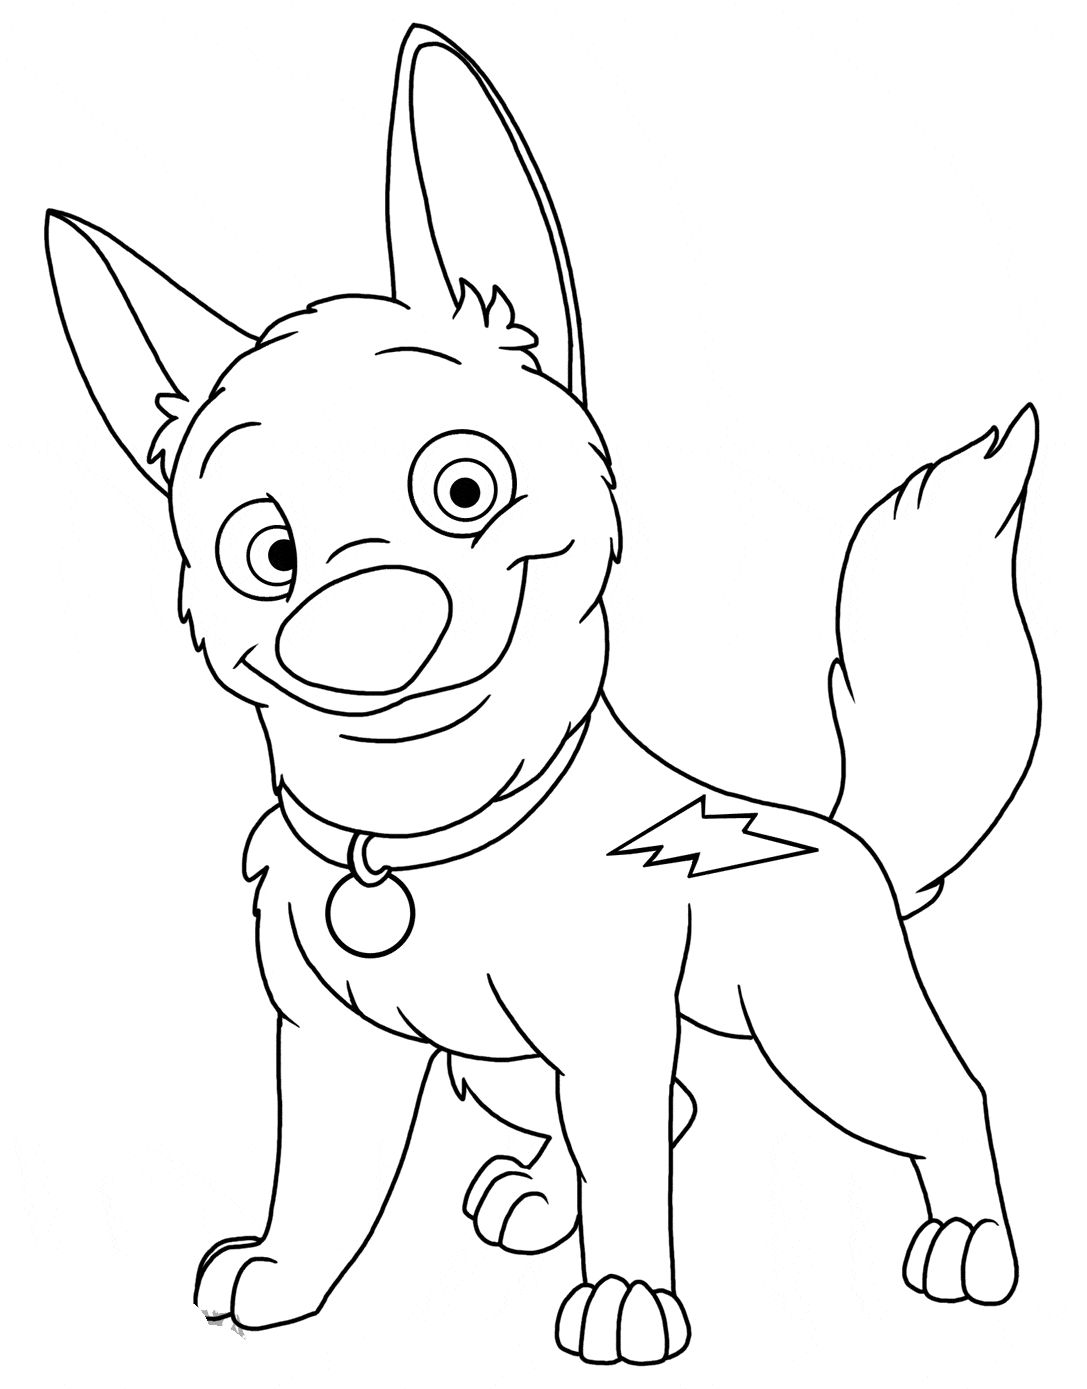 Disney Bolt Coloring Pages Free